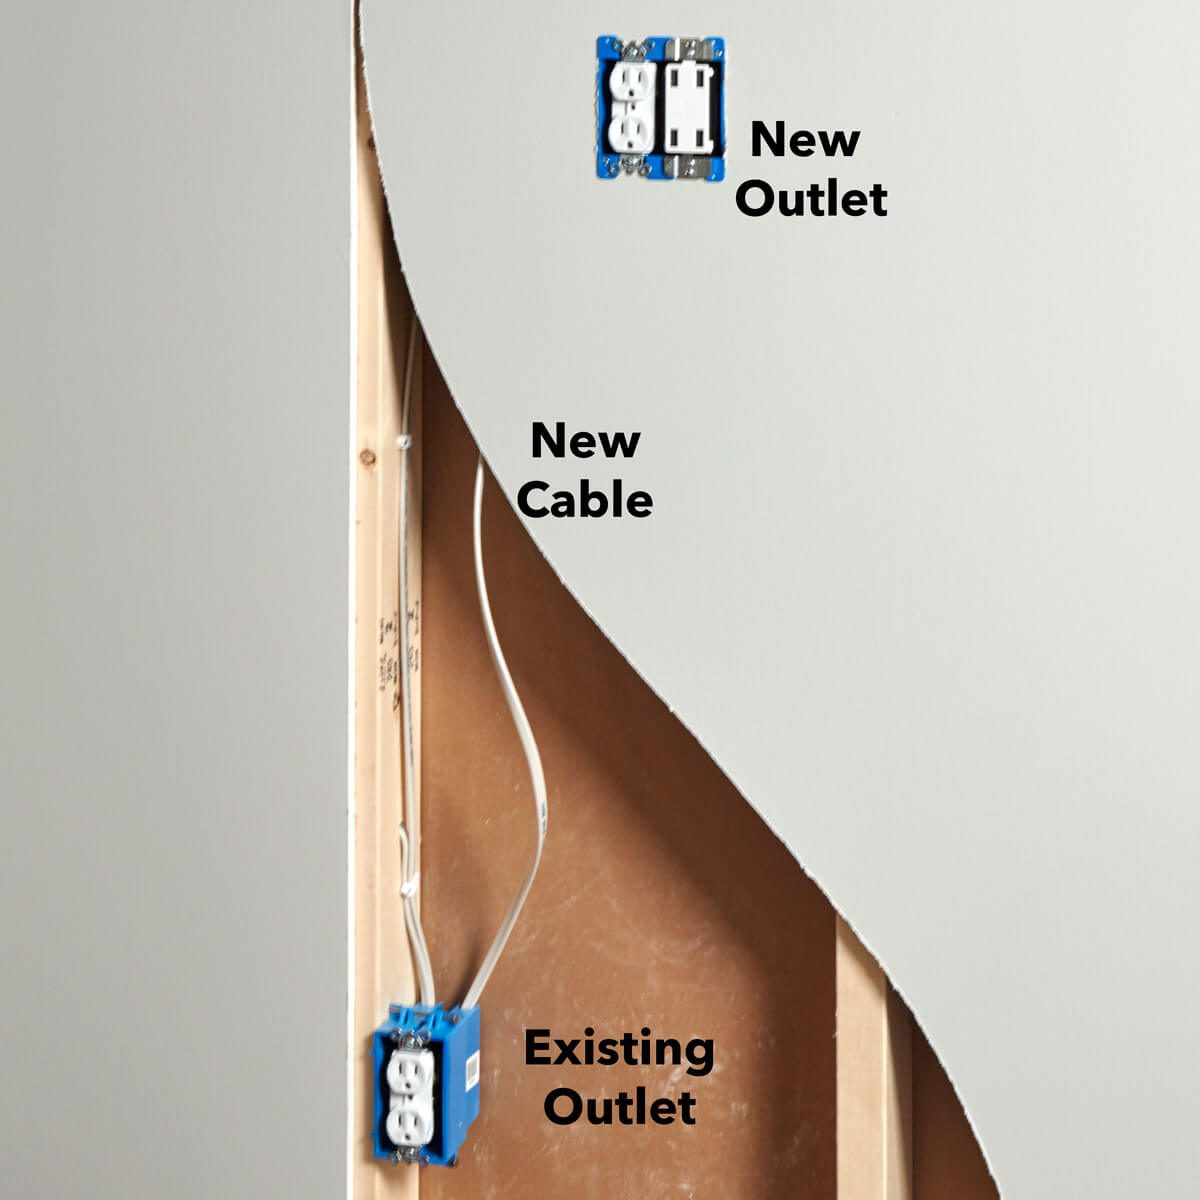 hight resolution of fh17ono 582 54 004 usb outlet install wall cutaway